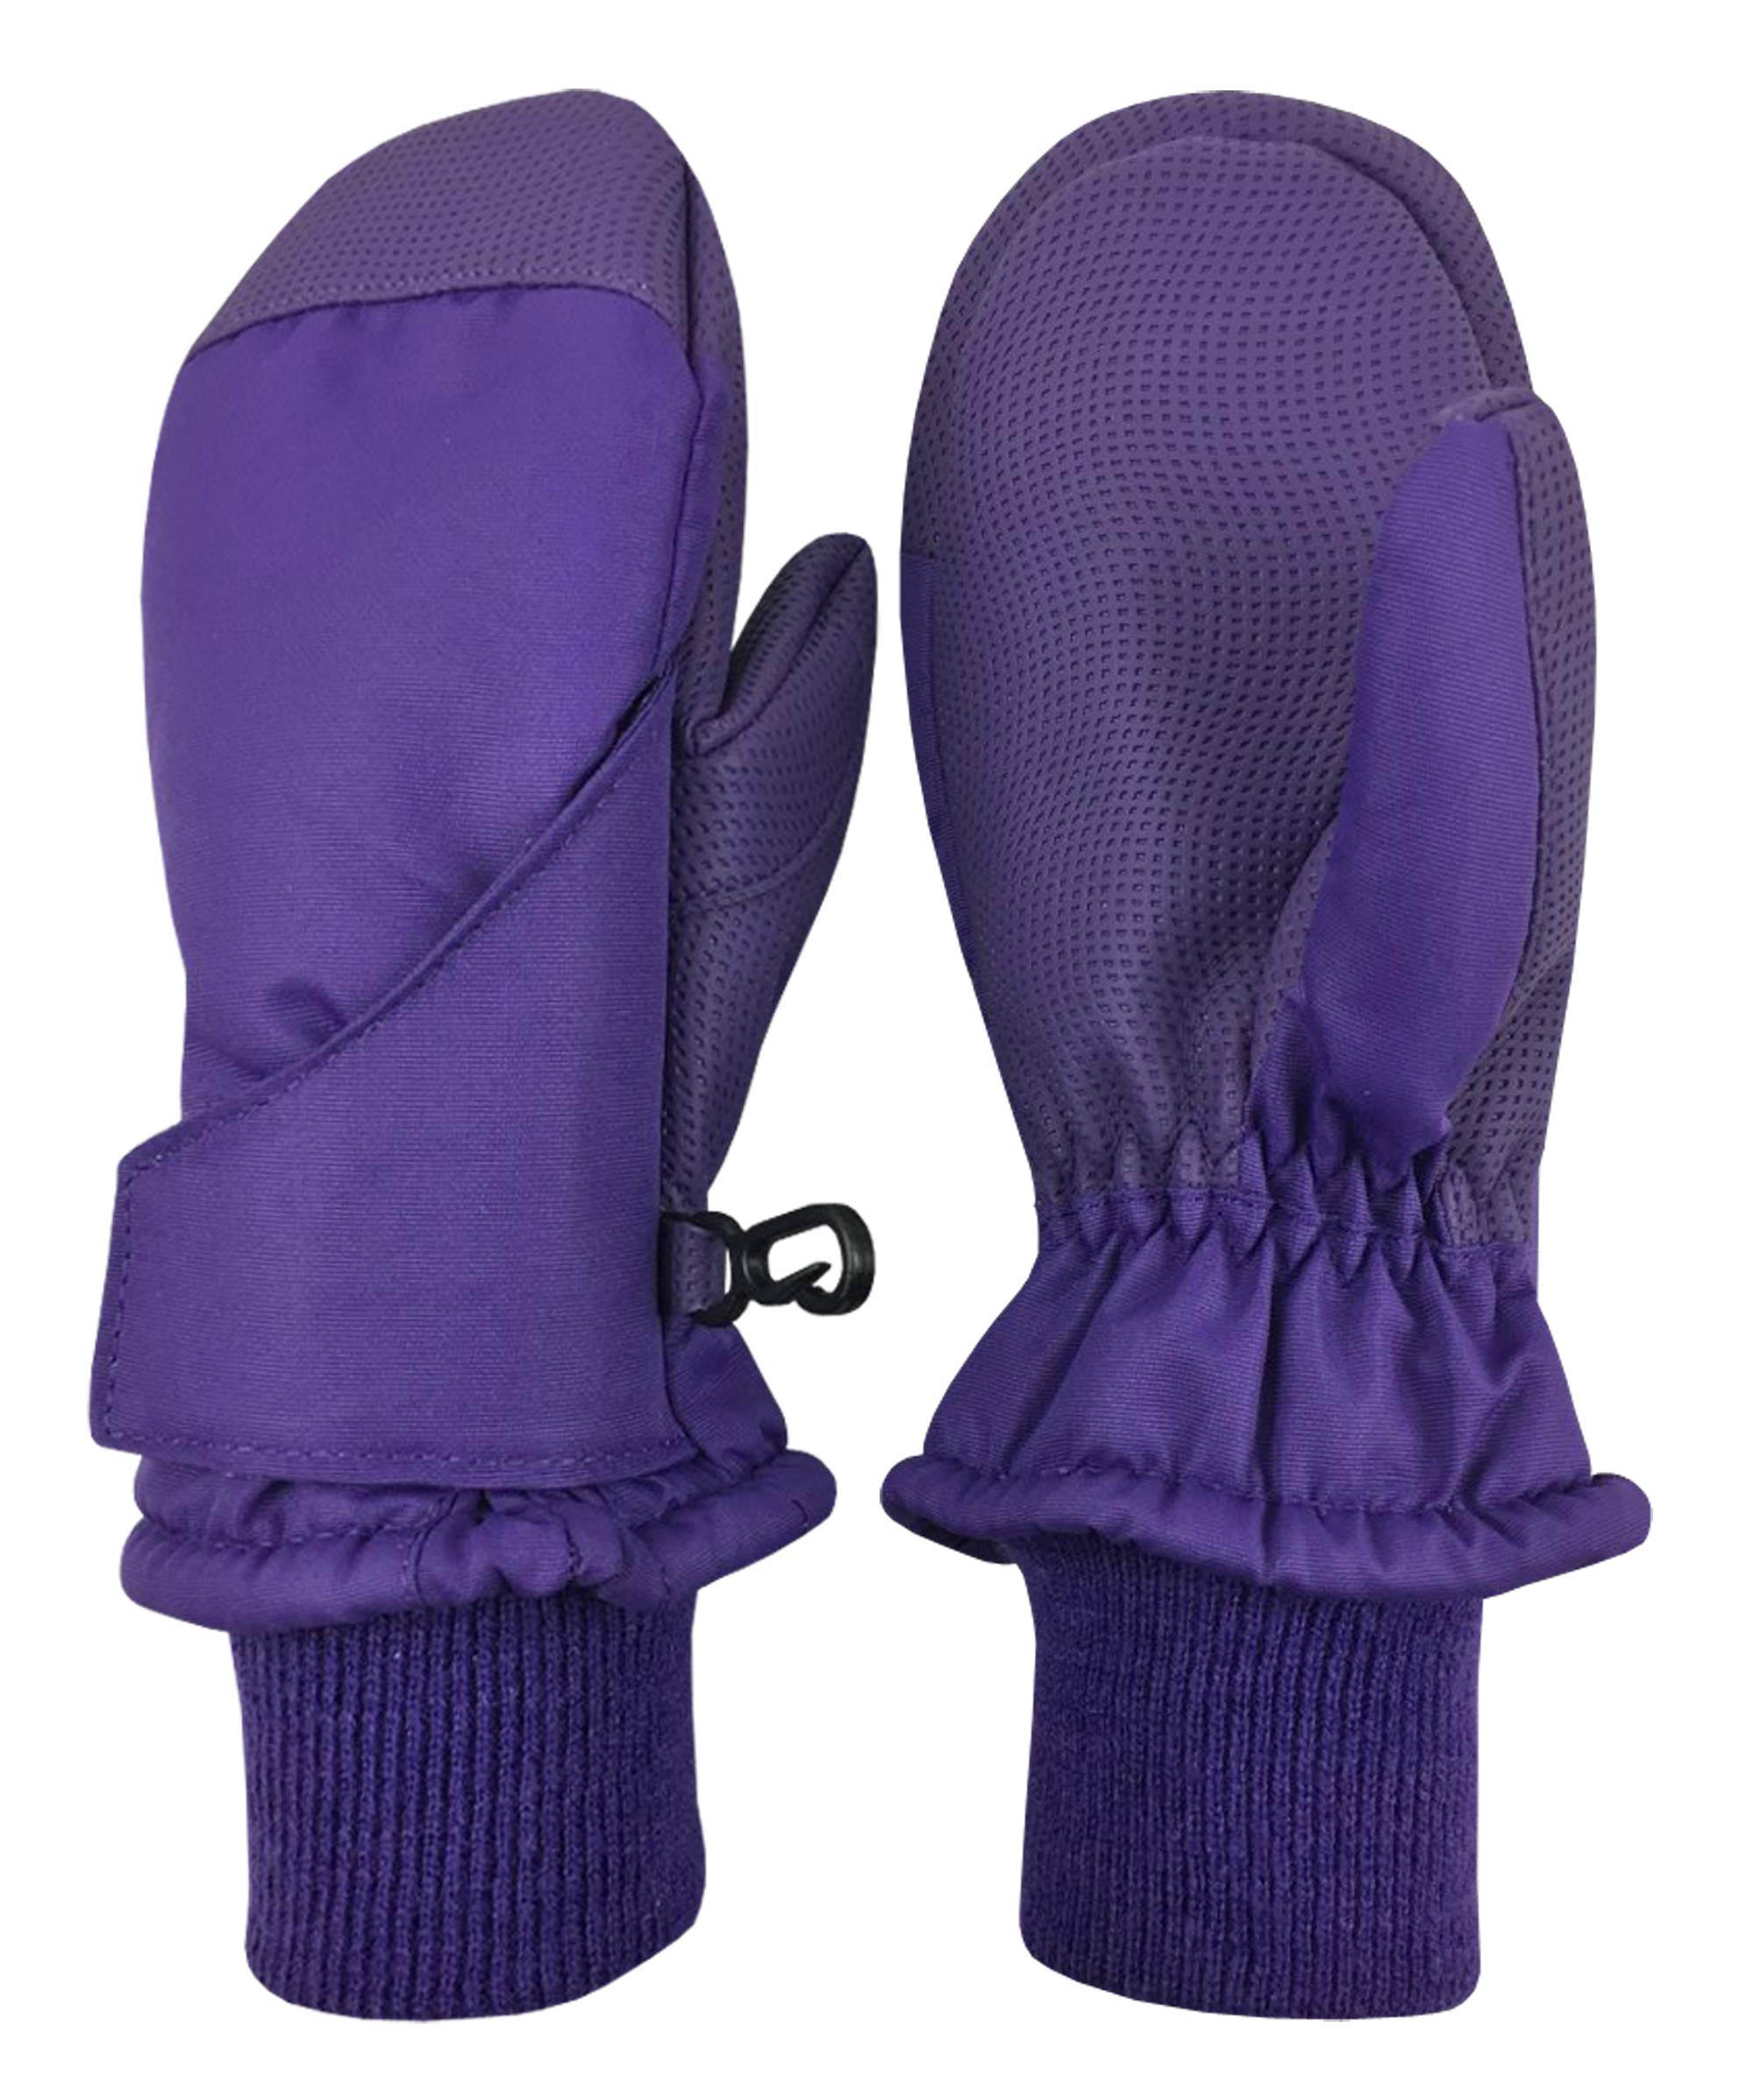 N'Ice Caps Kids and Baby Easy-On Wrap Waterproof Thinsulate Winter Snow Mitten (Purple, 1-2 Years) by N'Ice Caps